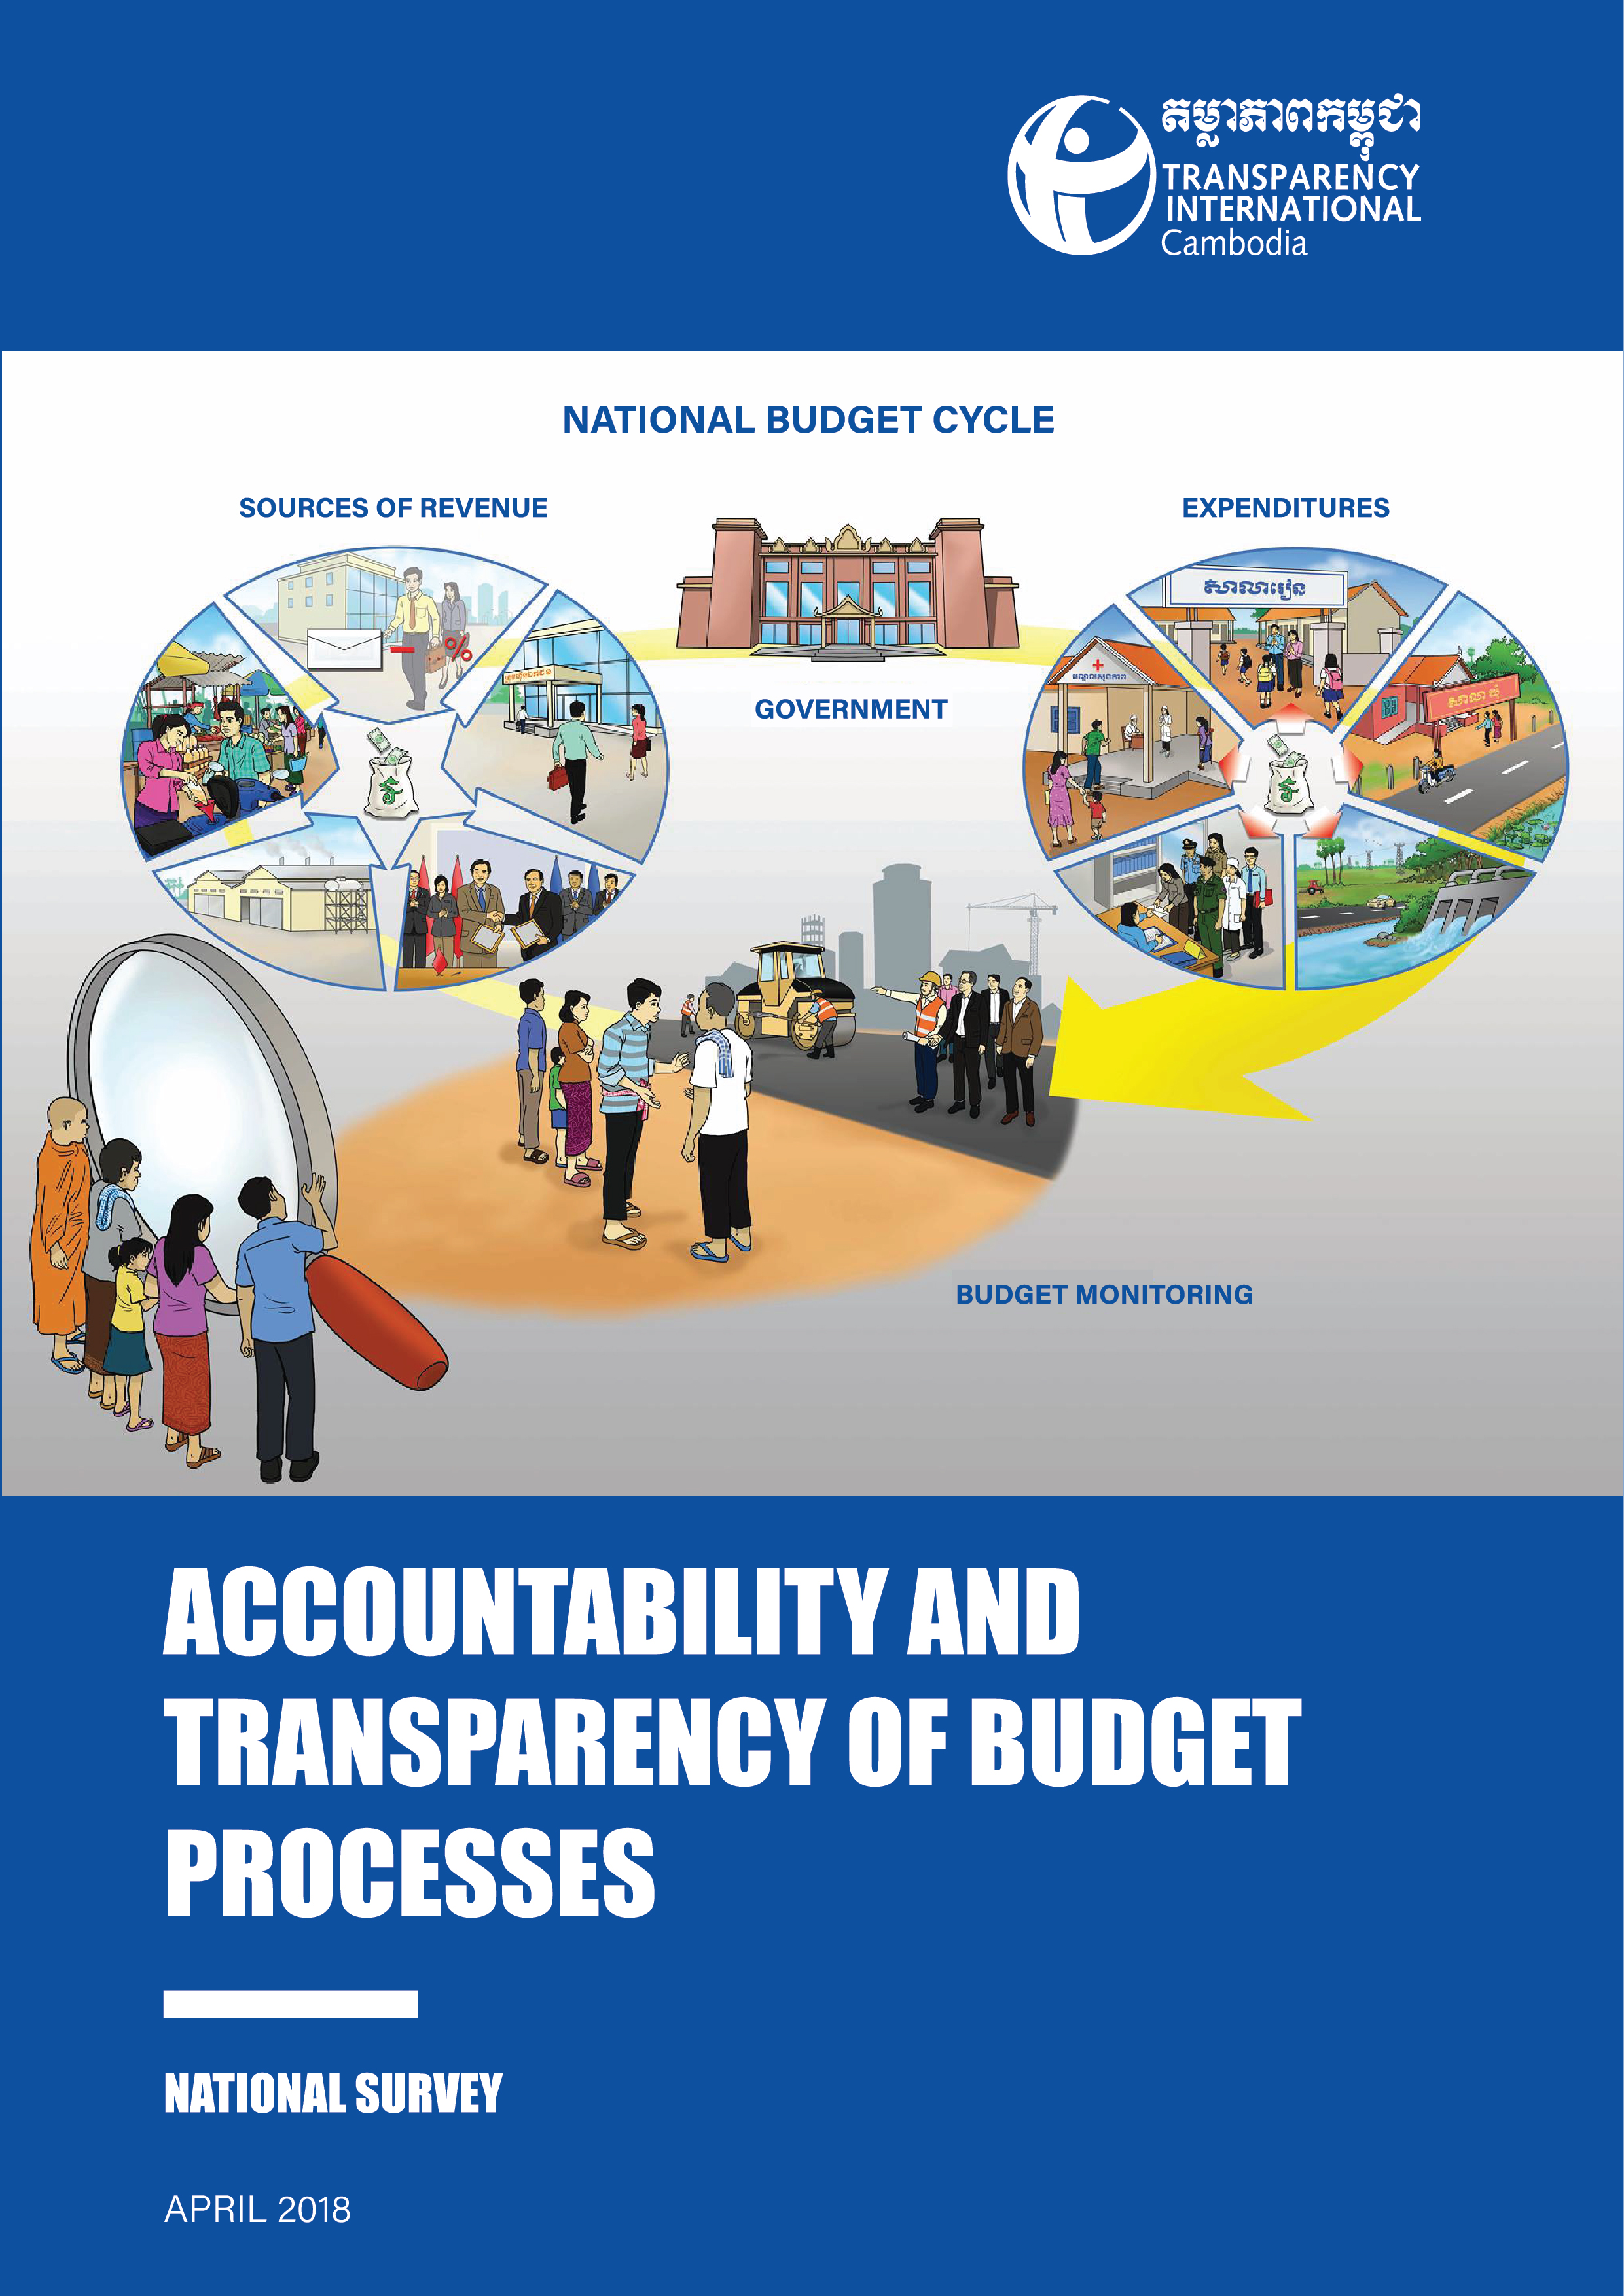 public s perception survey report on accountability and transparency